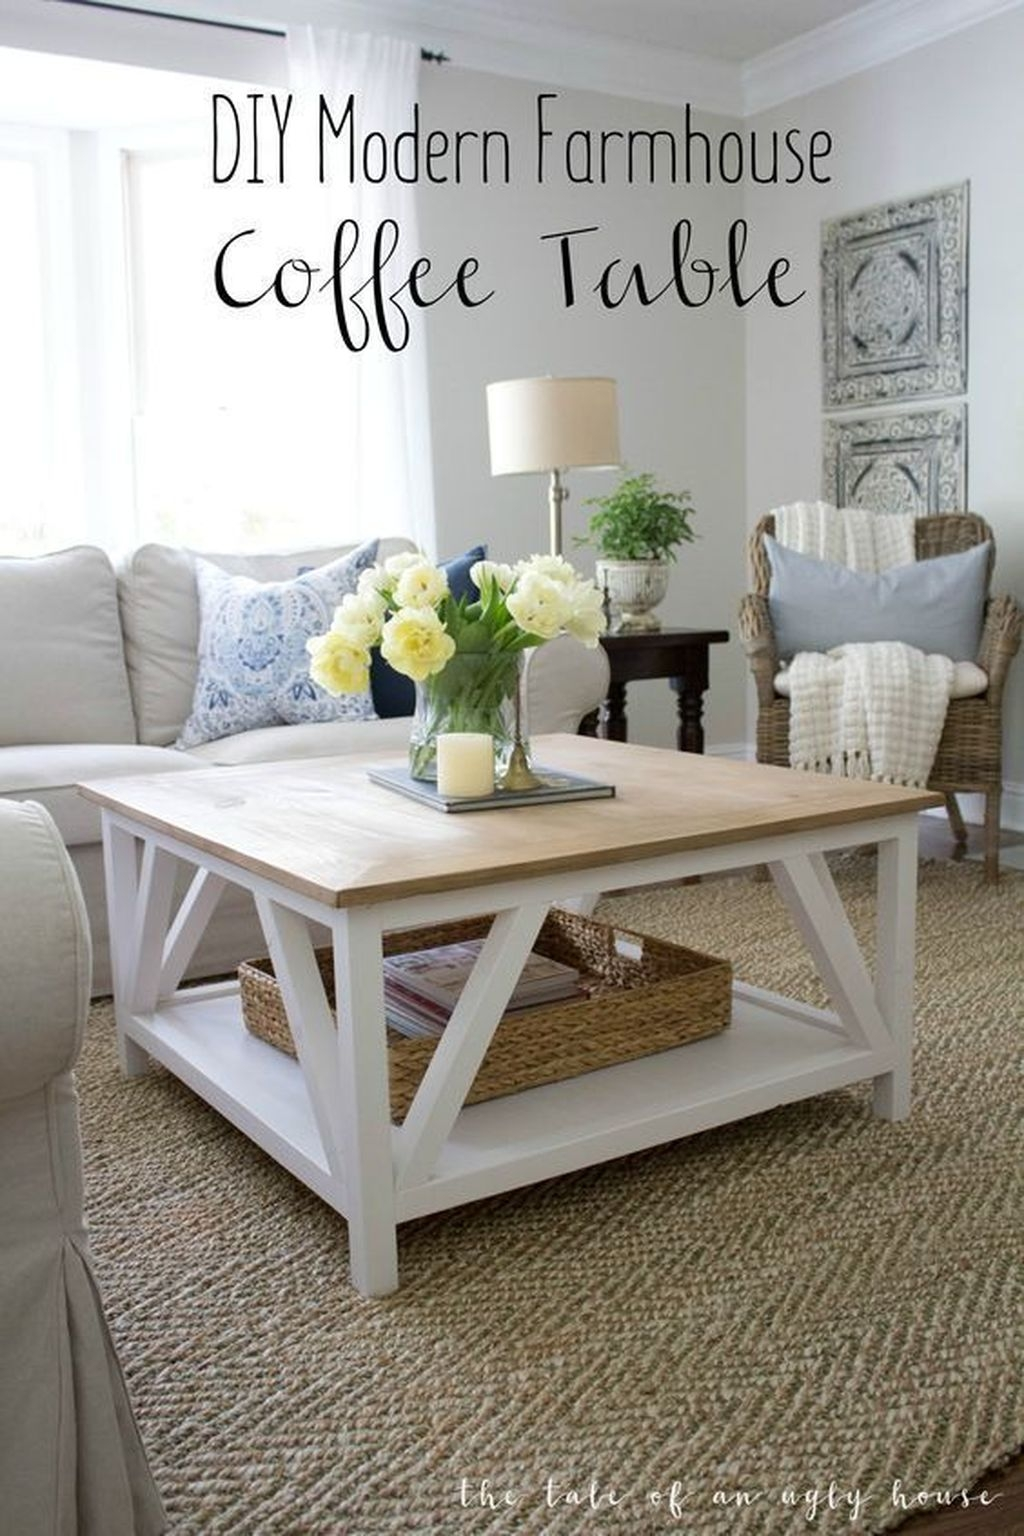 Creative Diy Coffee Table Ideas For Your Home 10